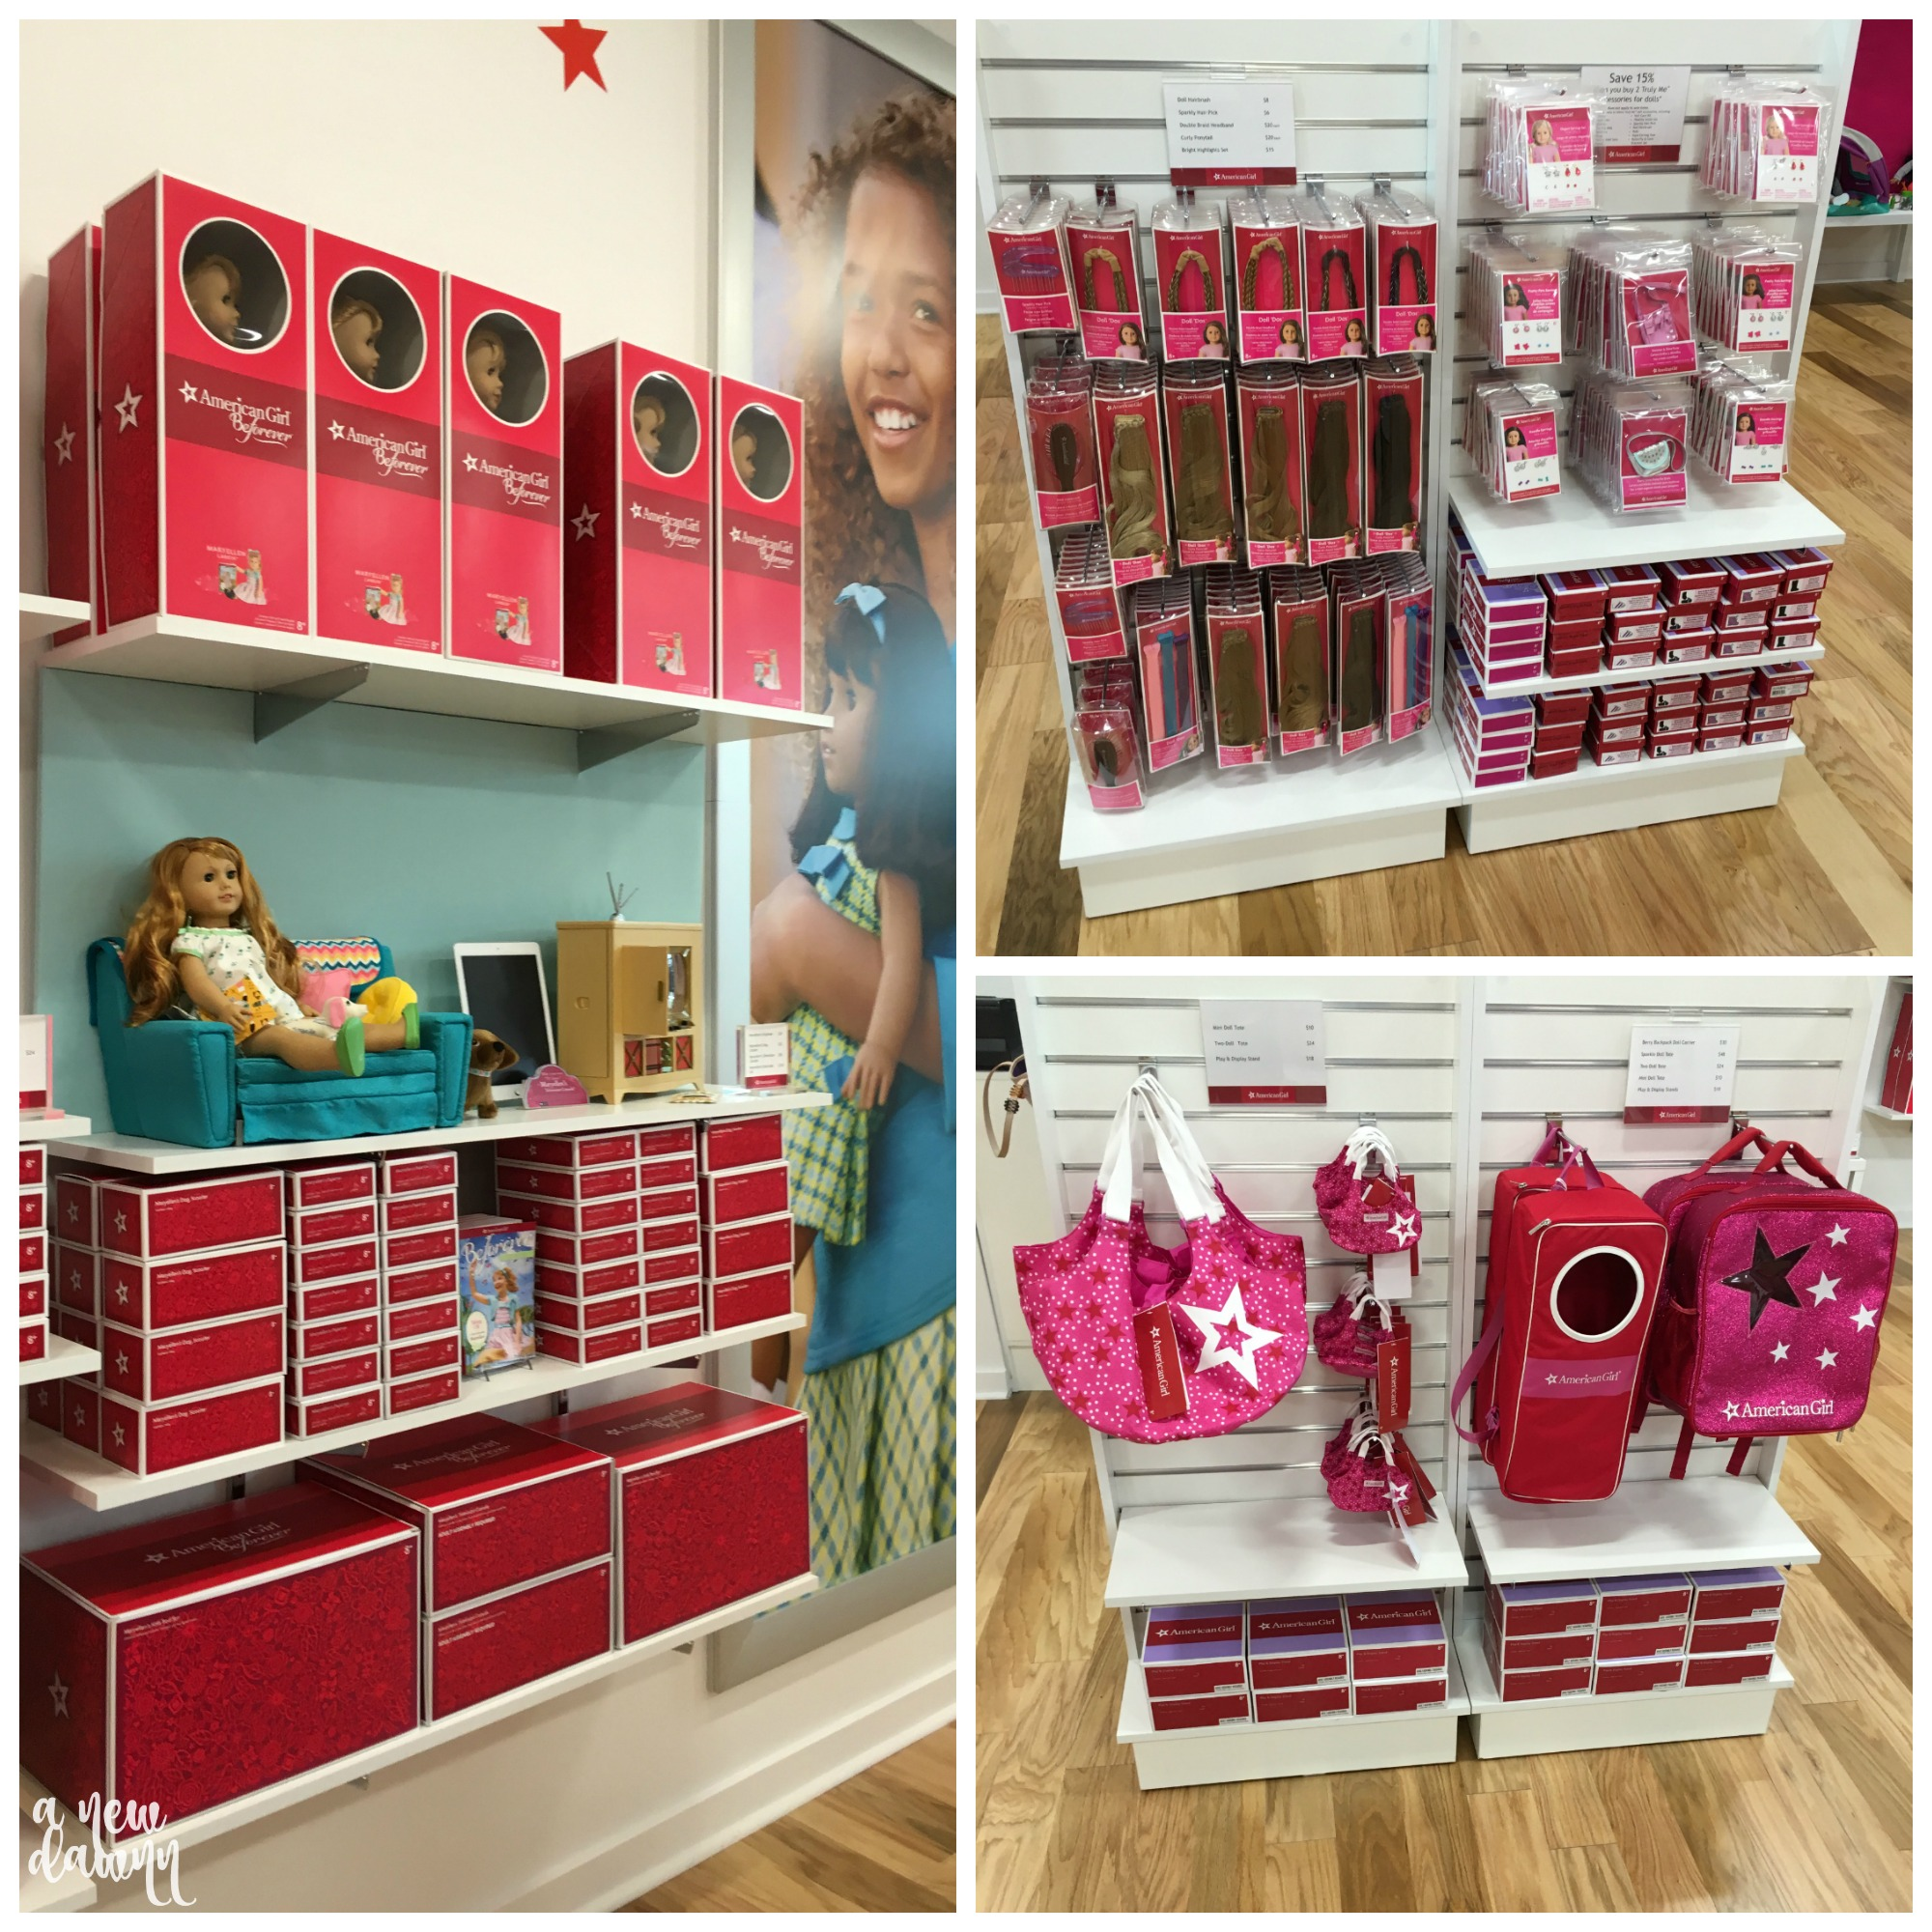 American-Girl-Store-King-of-Prussia